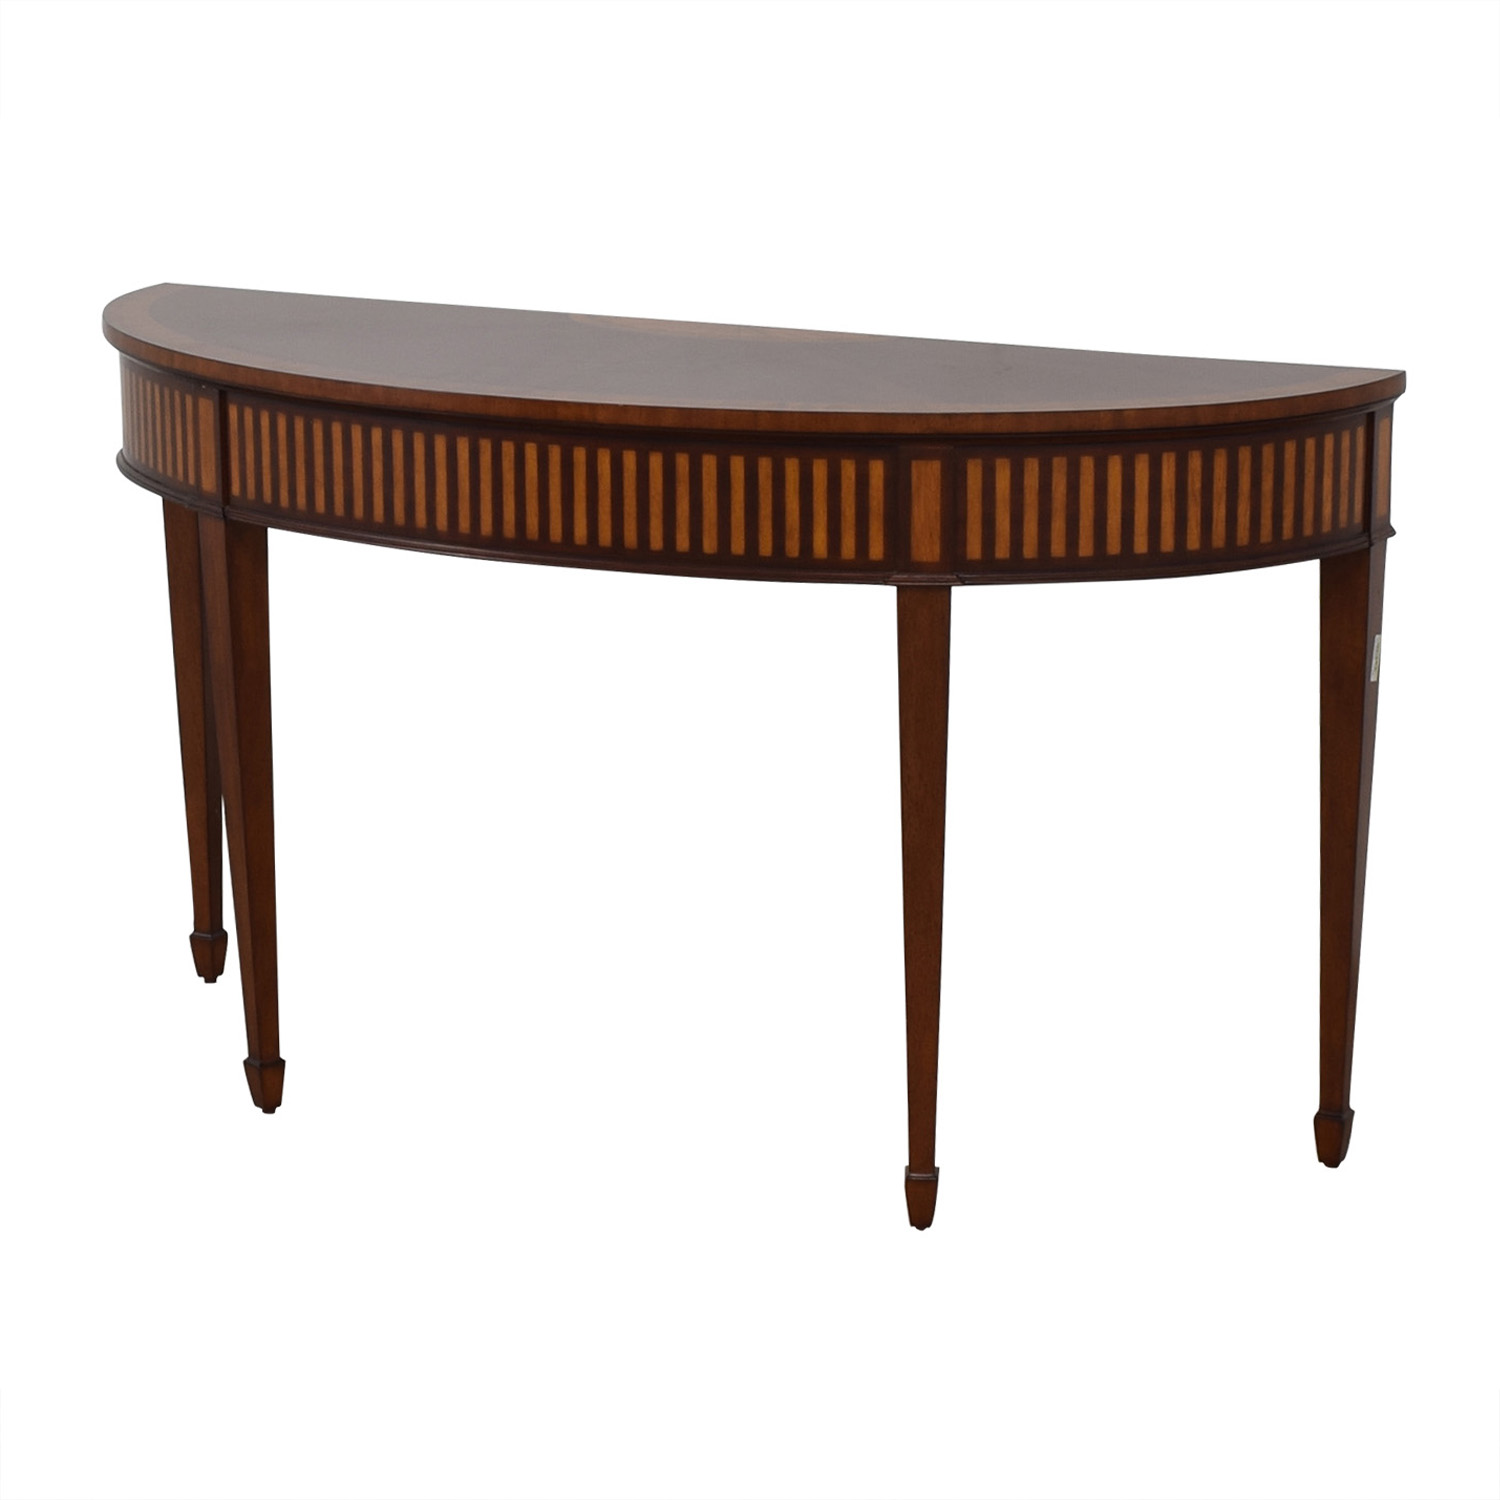 Ethan Allen Ethan Allen Newman Demilune Sofa Table price